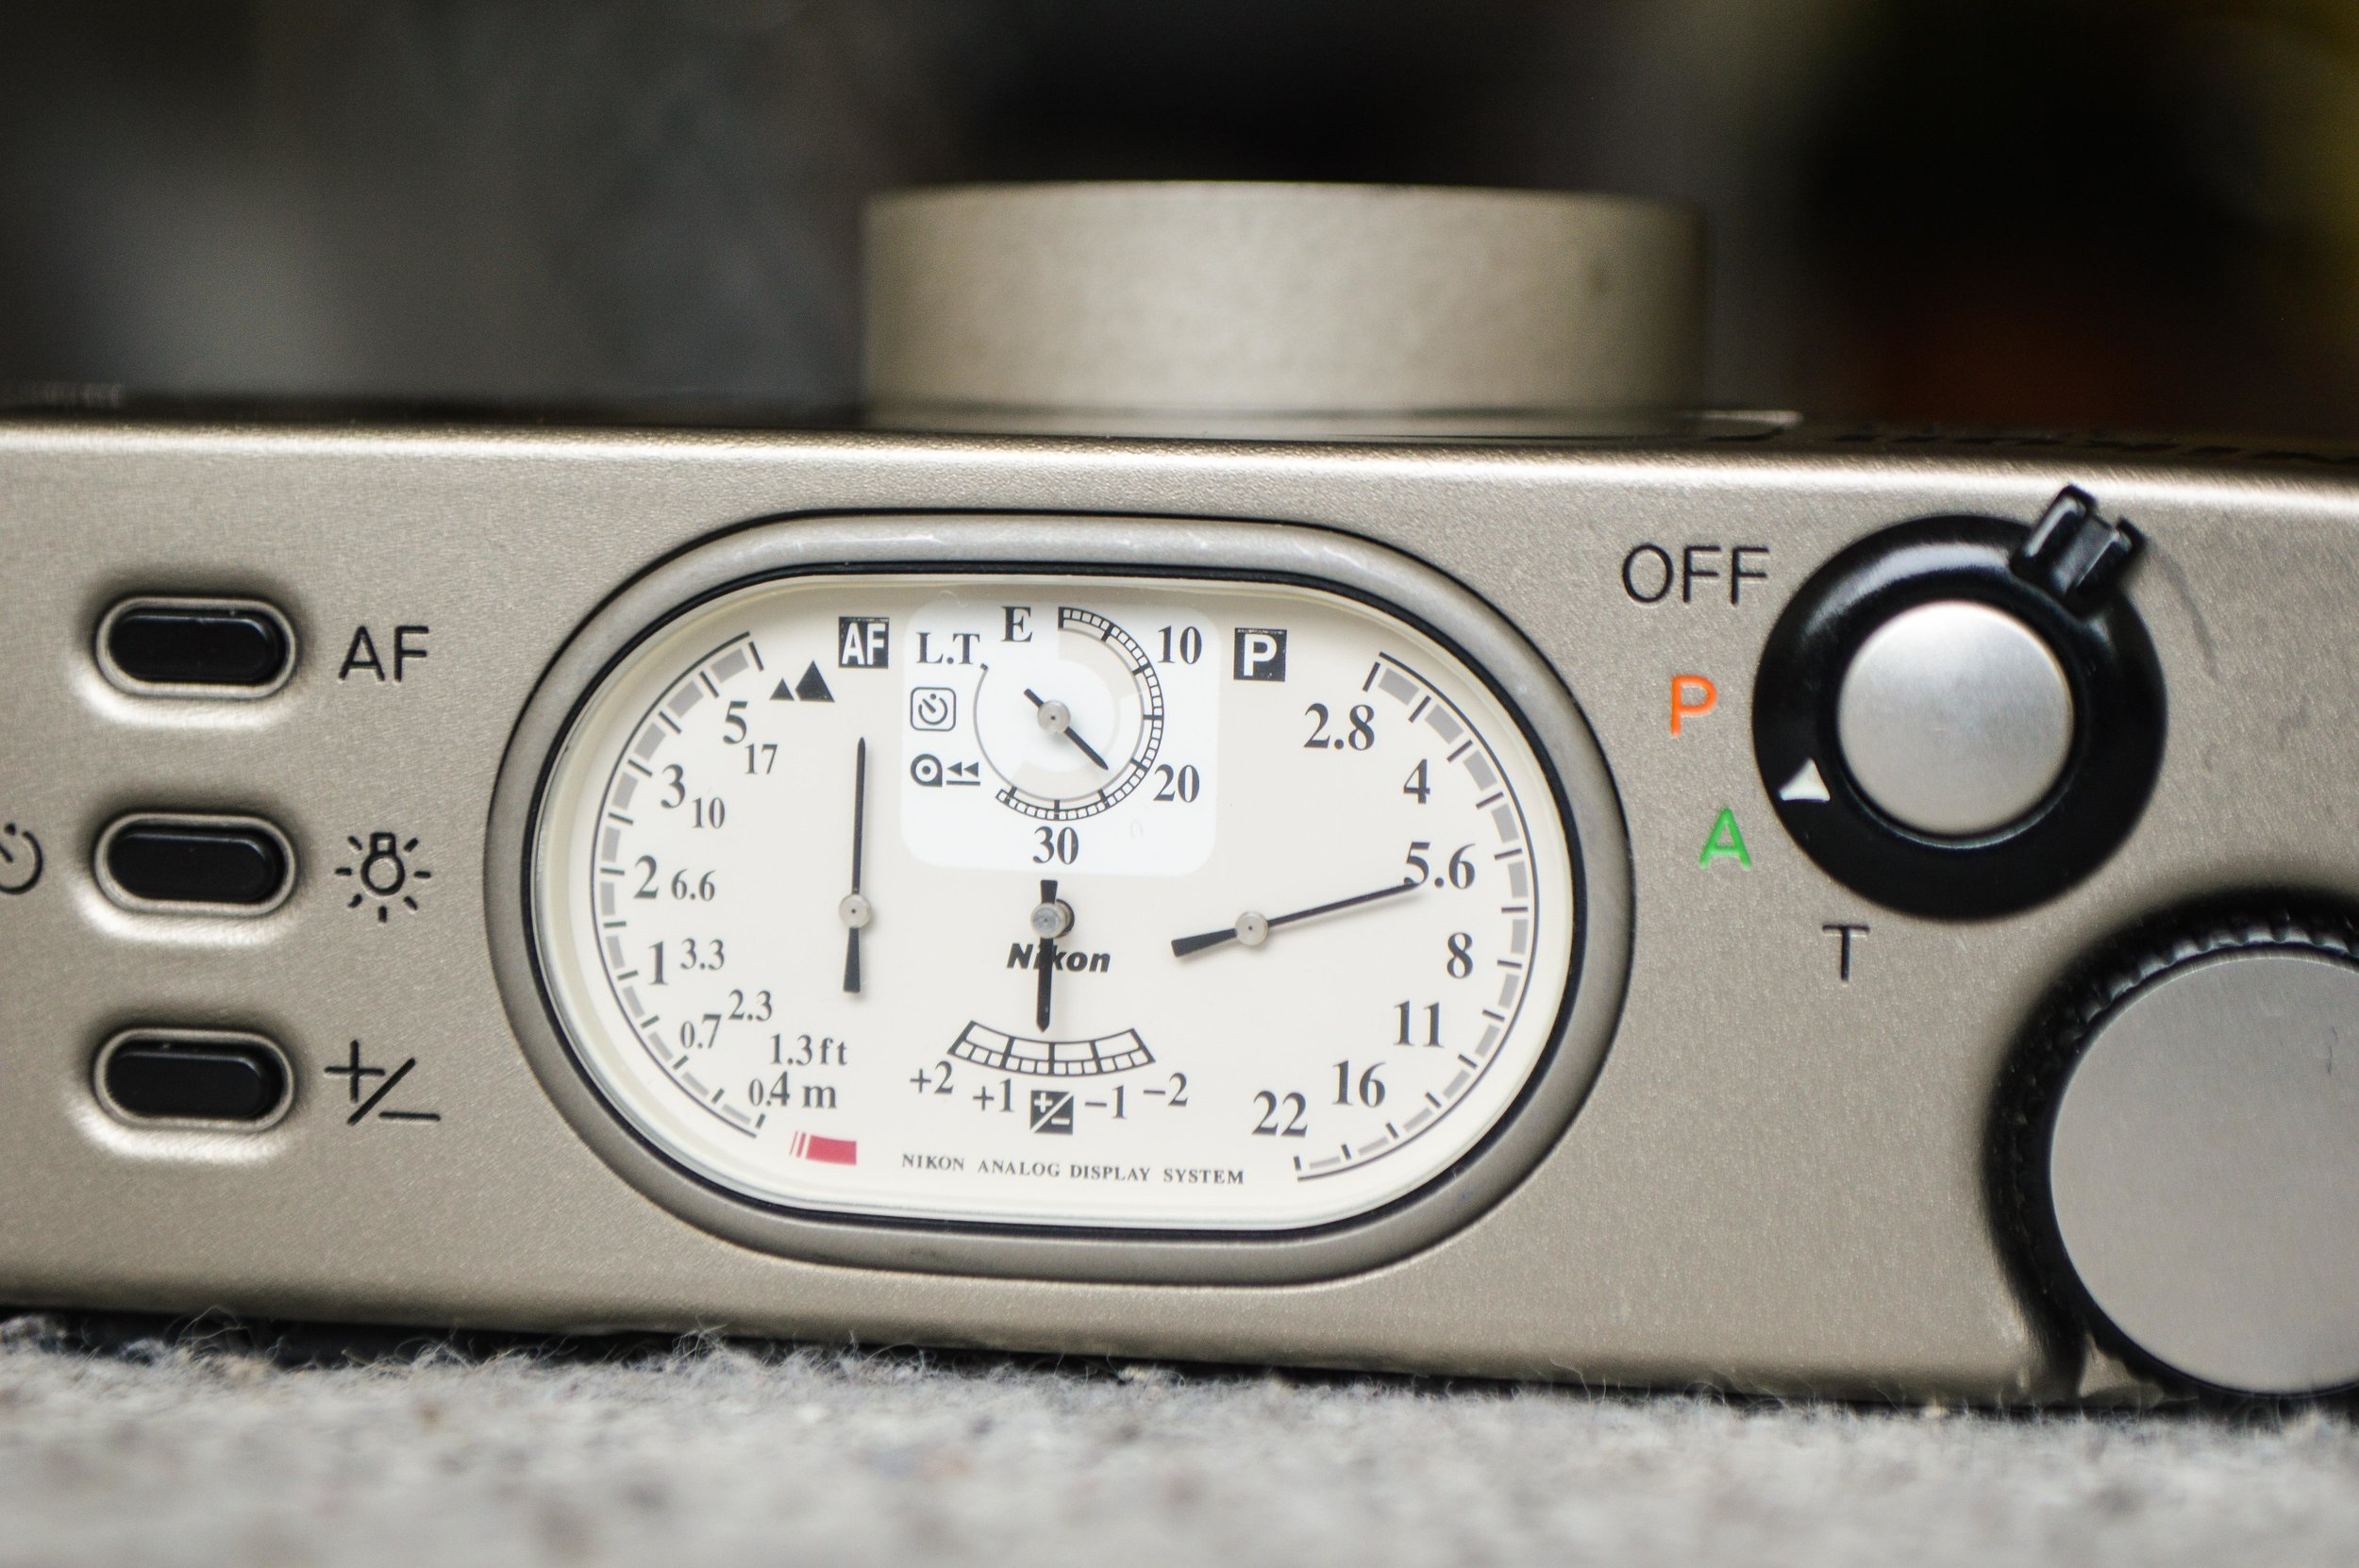 love these analogue dials, and its really handy to see your aperture  on the body of the camera rather than on a screen.